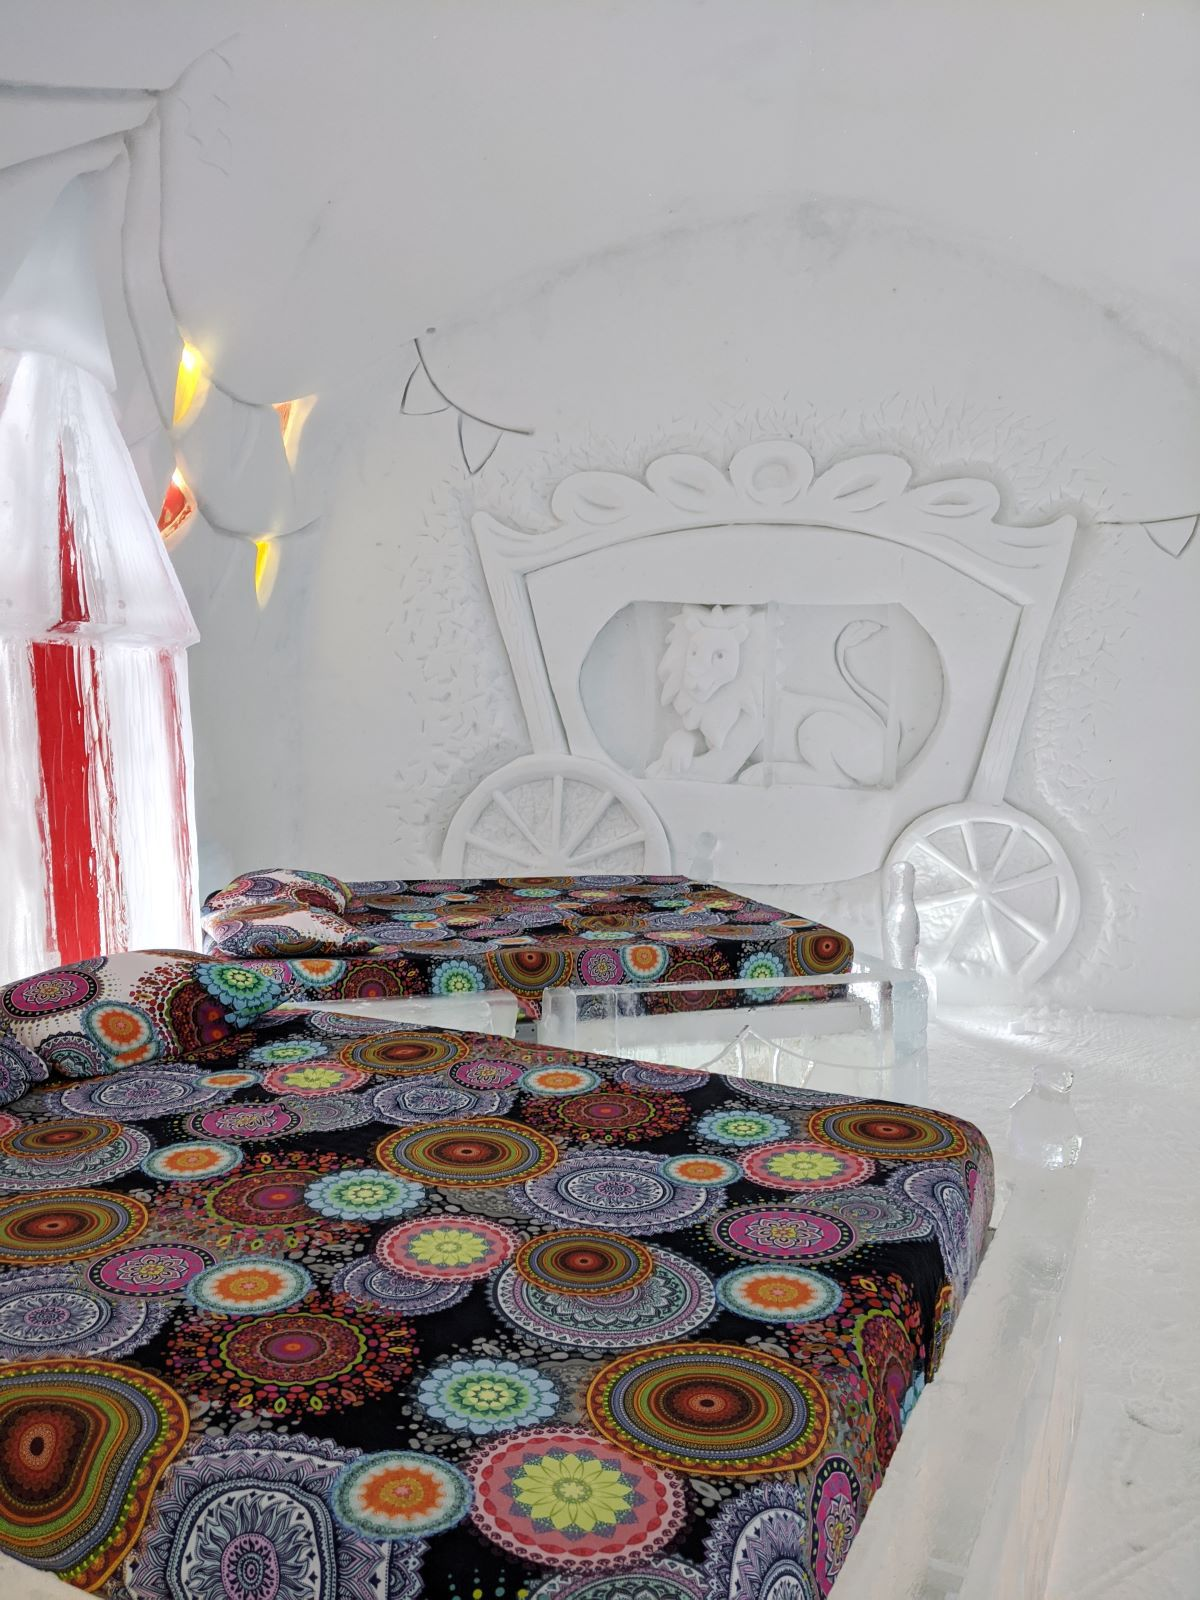 Circus room with circus tents carved into ice, plus a circus carriage containing a lion carved into the snow walls